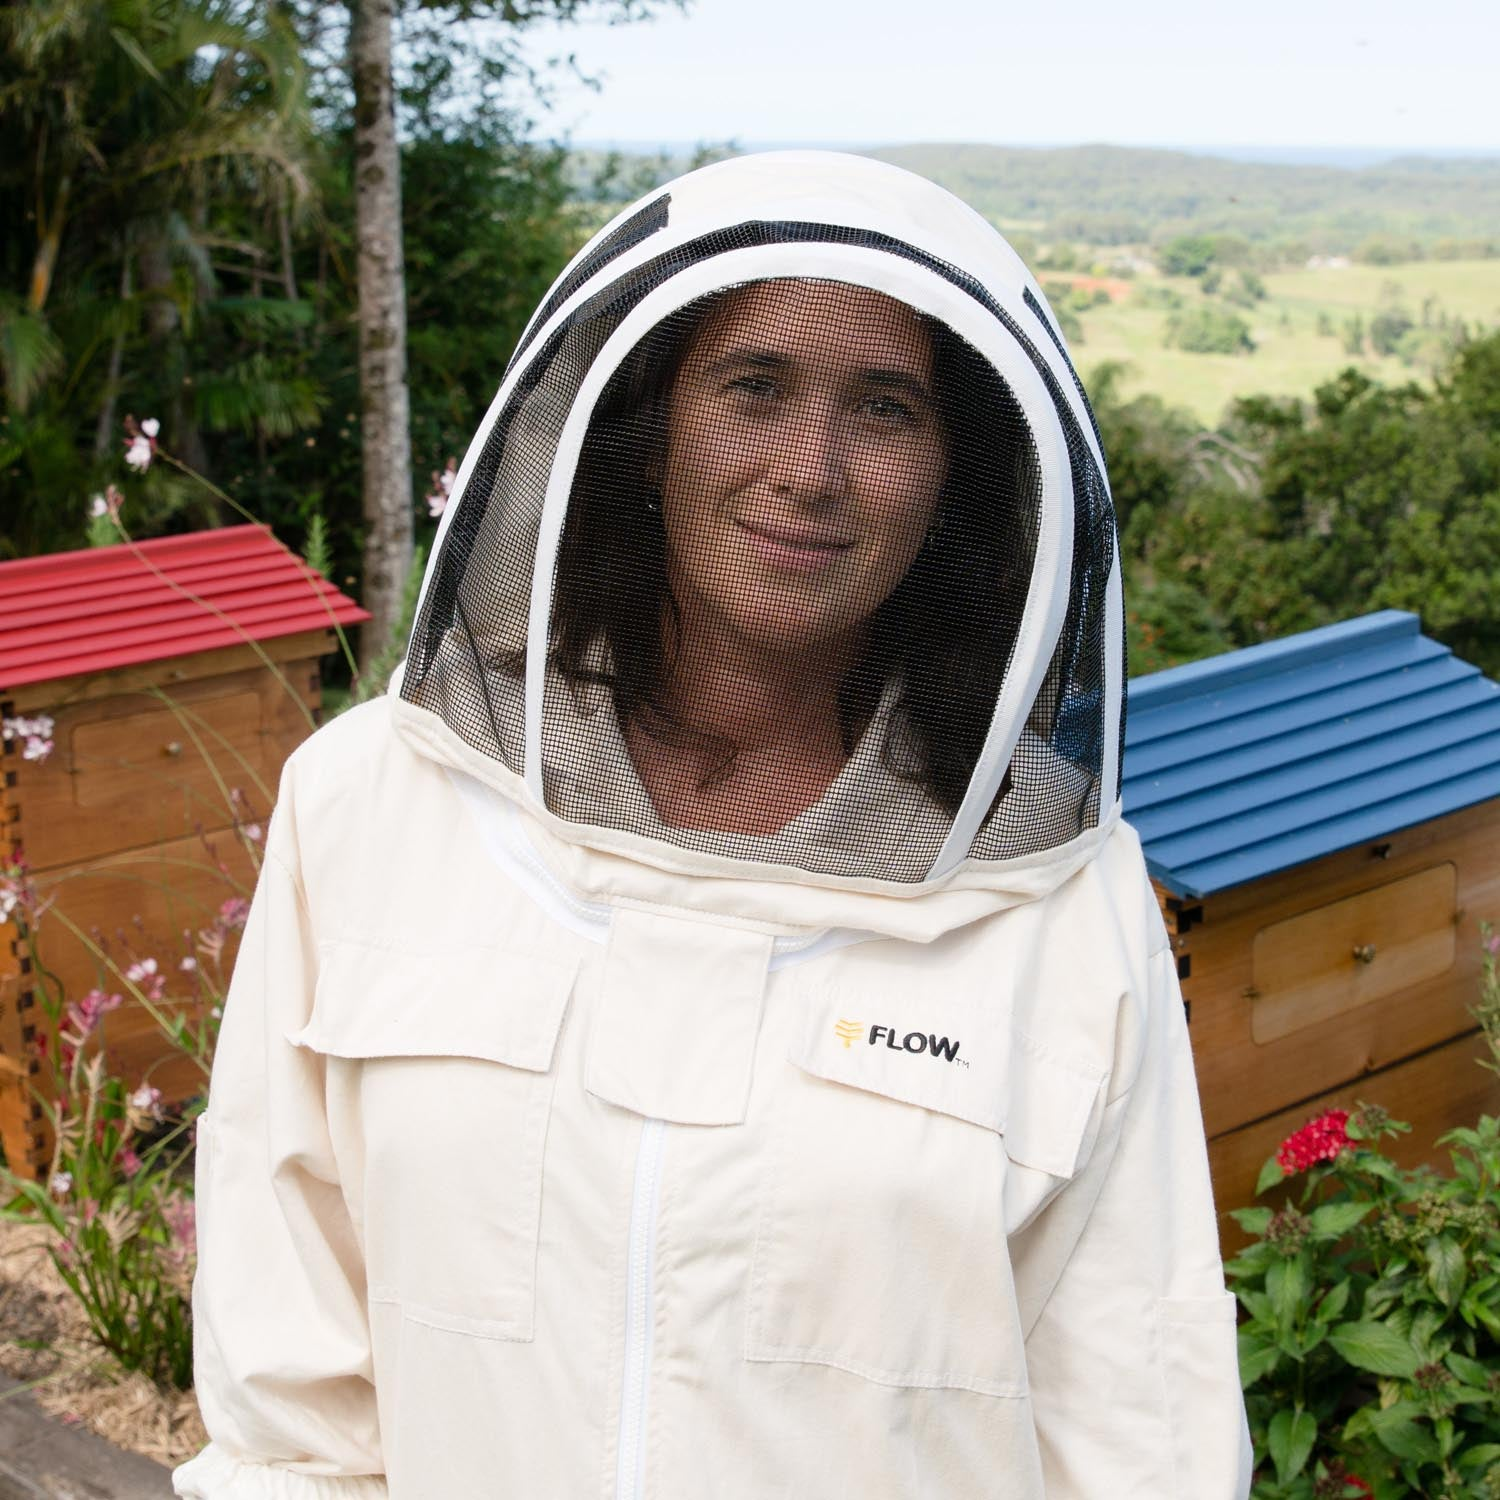 Bees /& Co U75 Natural Cotton Beekeeper Suit with Square Veil